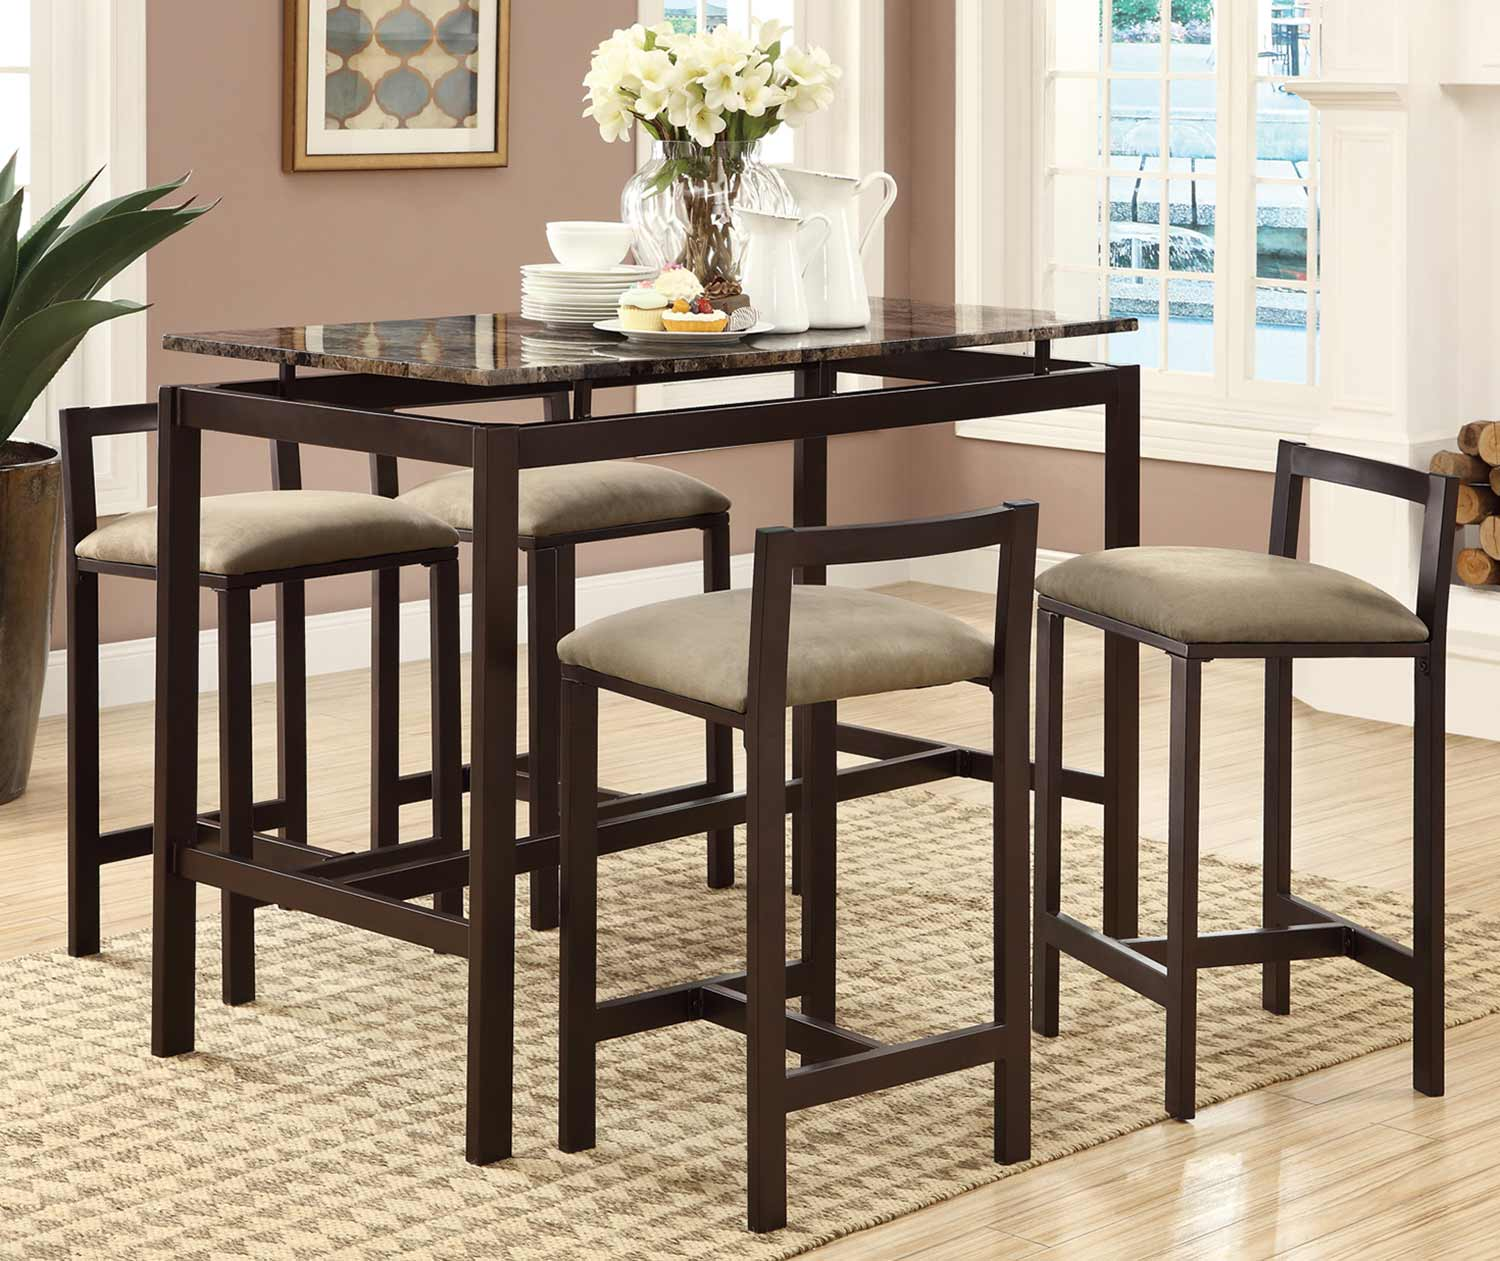 Coaster Dinettes 5 Piece Bar Stool Set - Brown